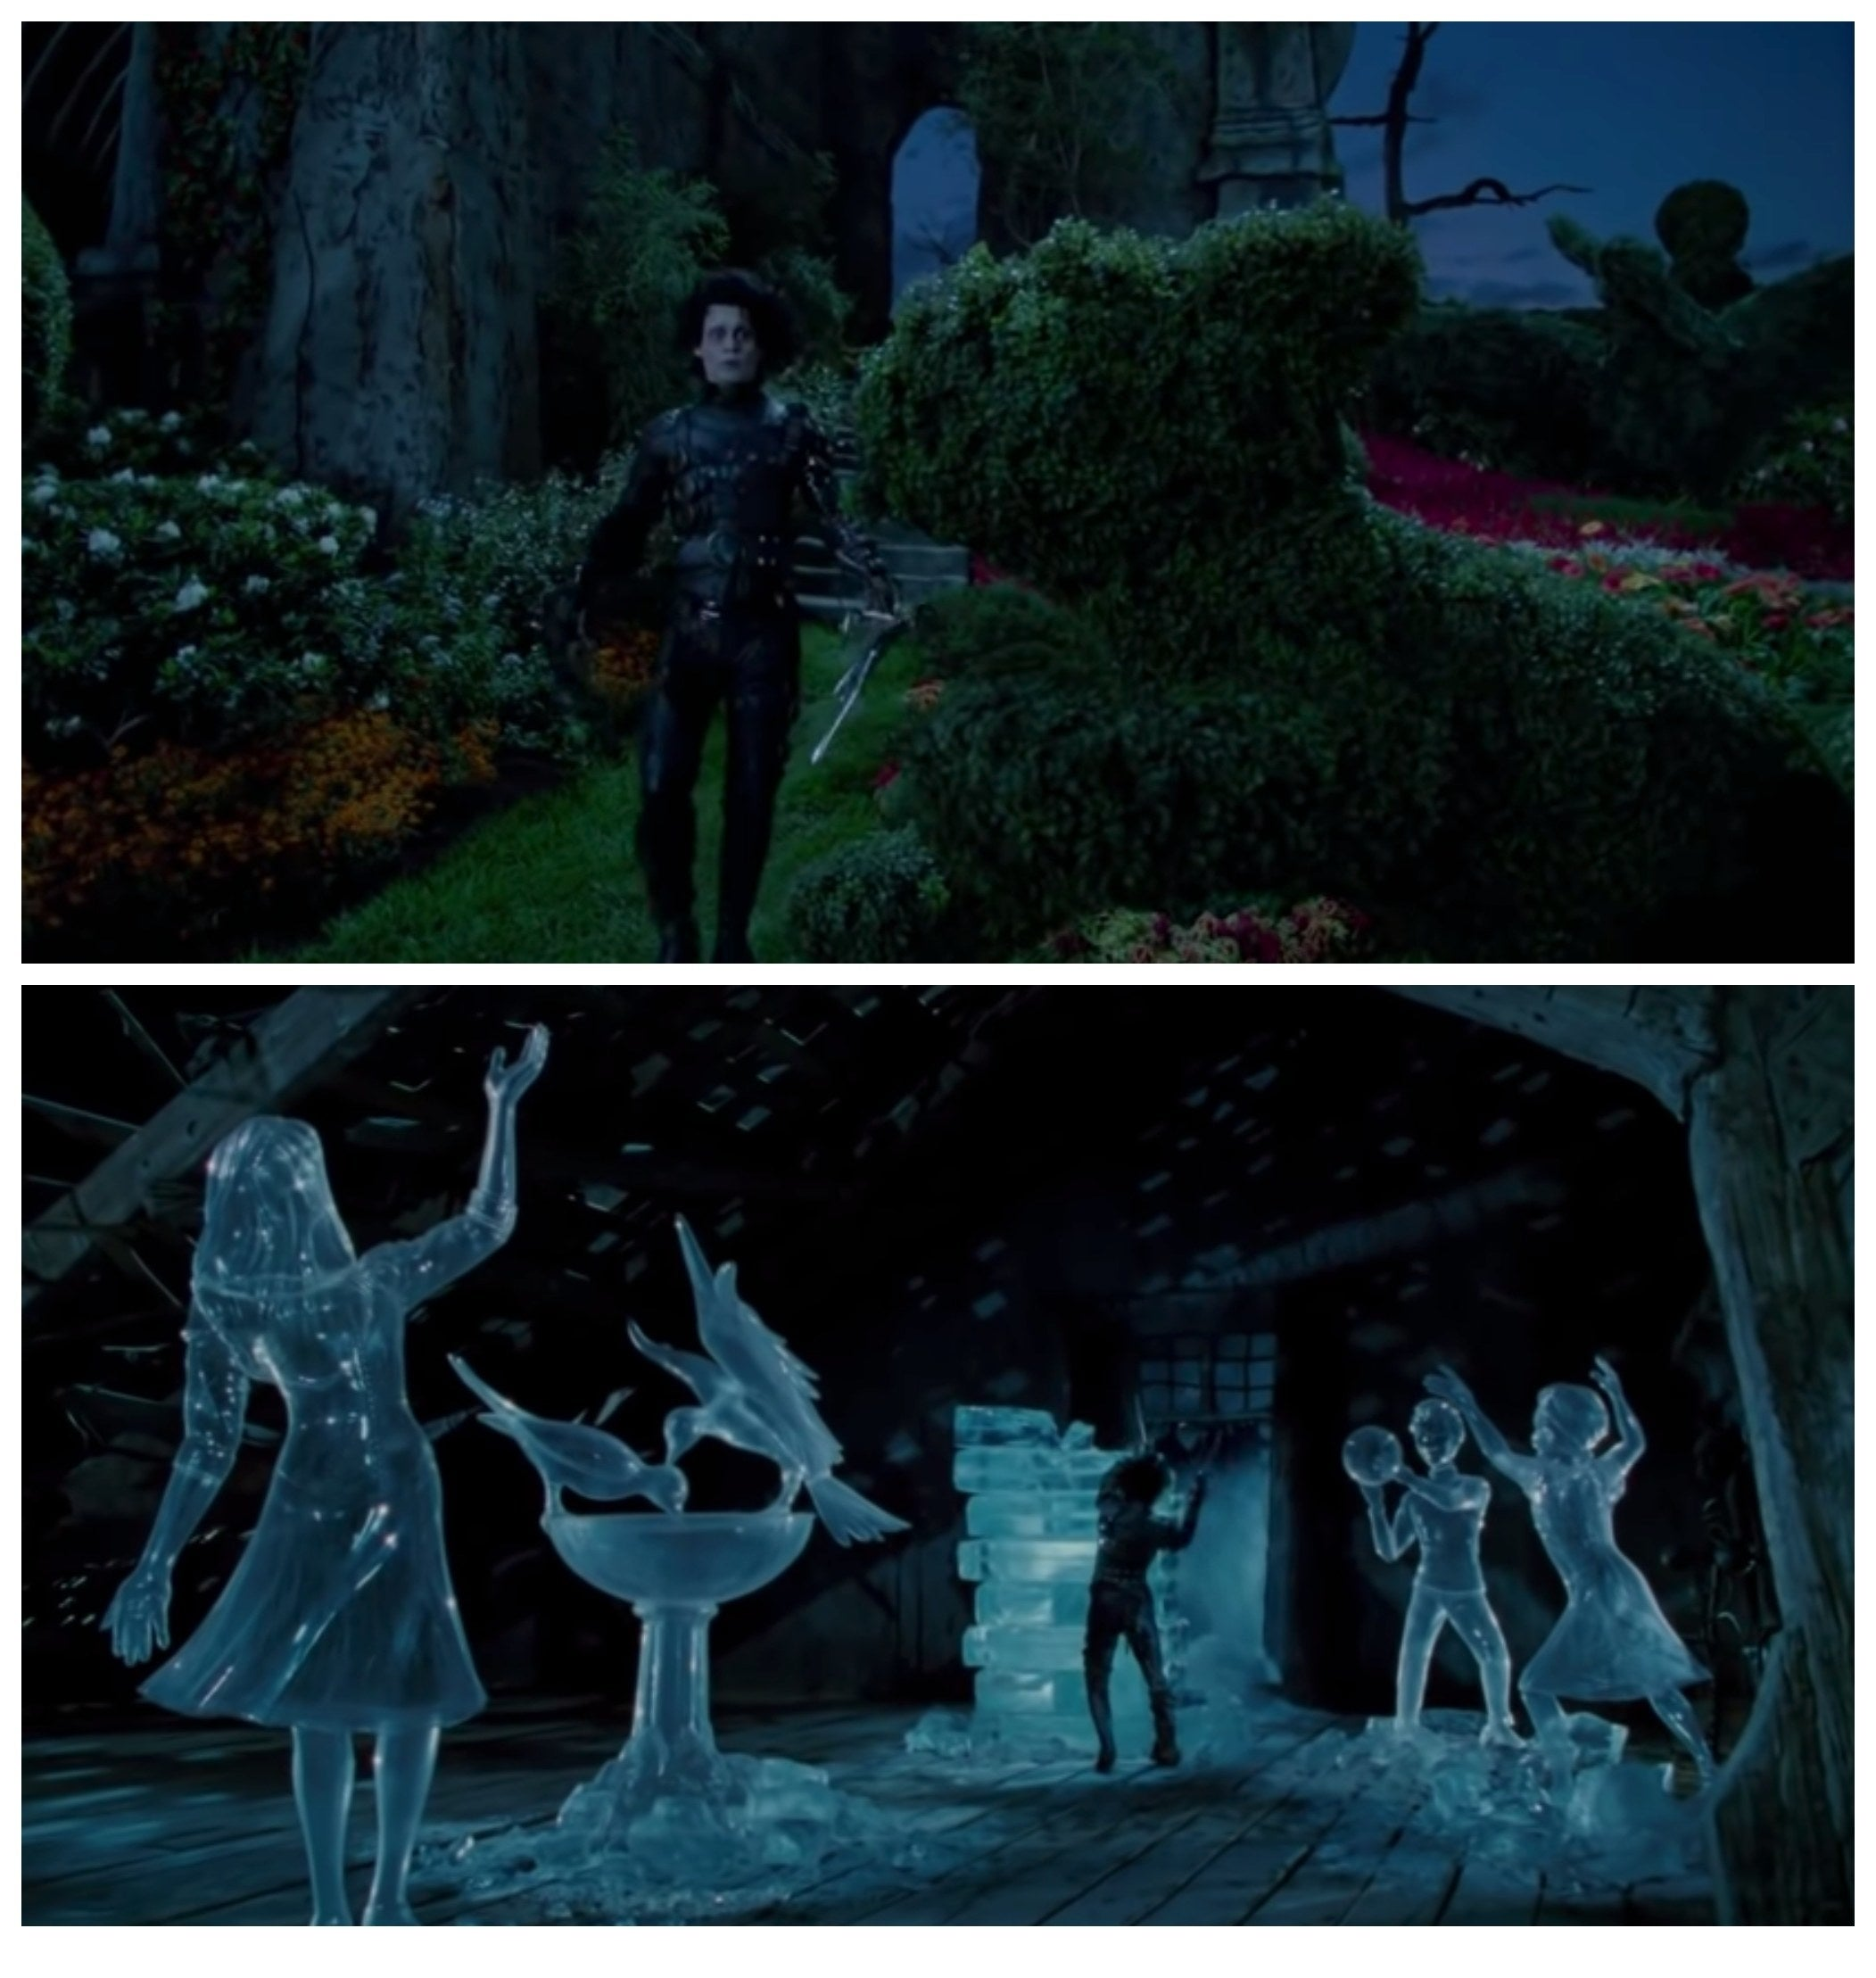 A collage showing Edward Scissorhands trimming hedges and carving ice sculptures in his tower